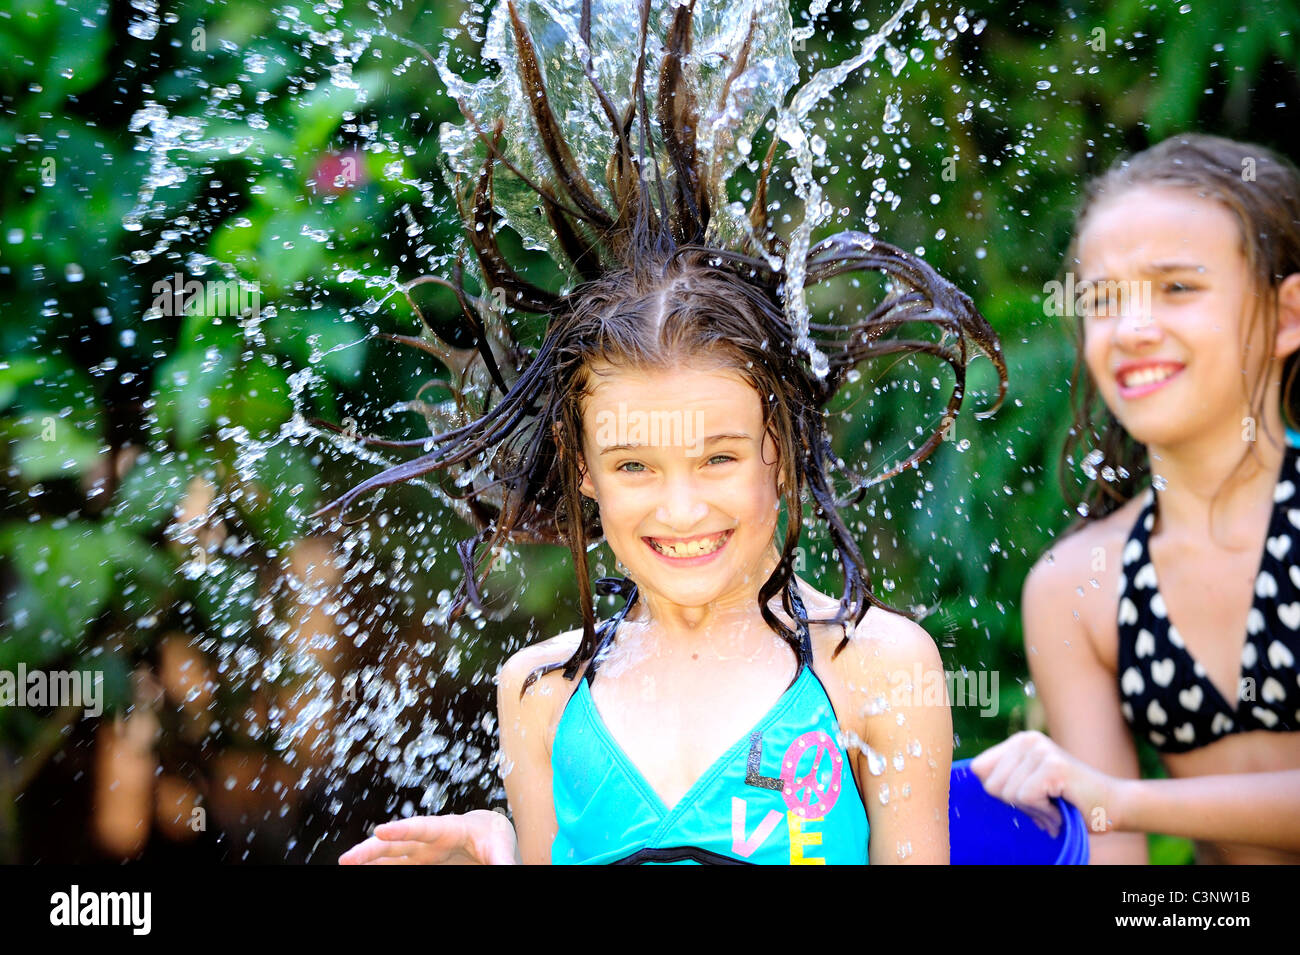 child (12 years old) throwing bucket of water over her sister (9 years old) - Stock Image